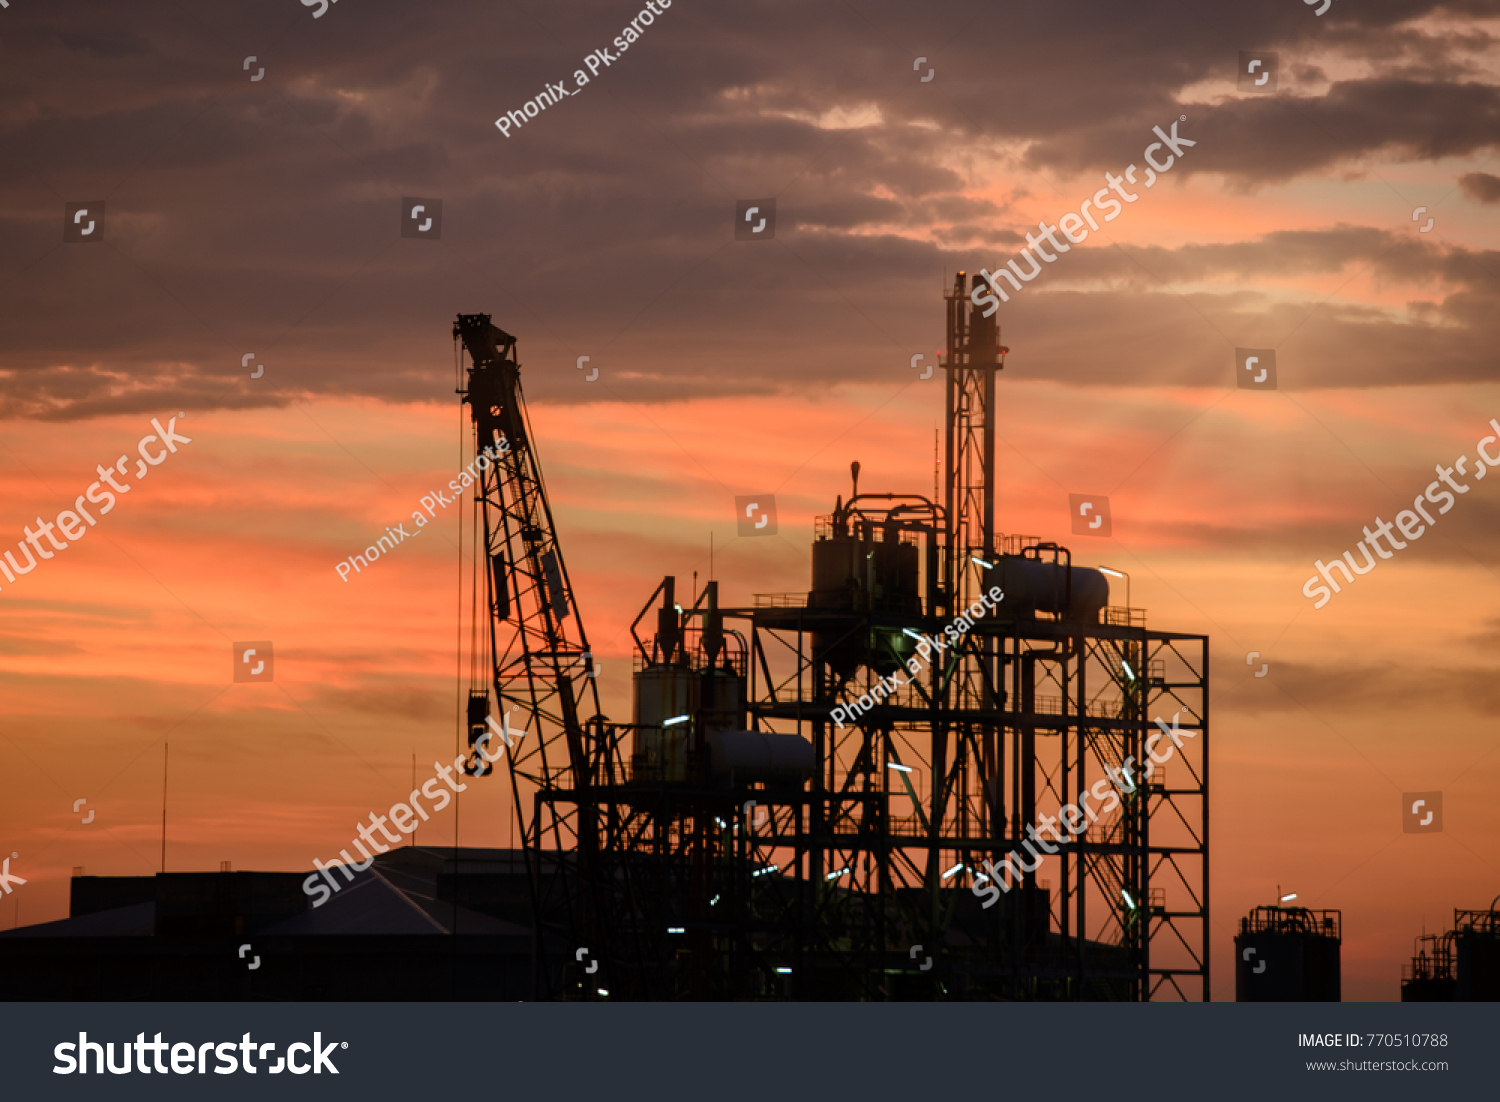 Silhouette Tower Cranes Structural Steel Beam Stock Photo